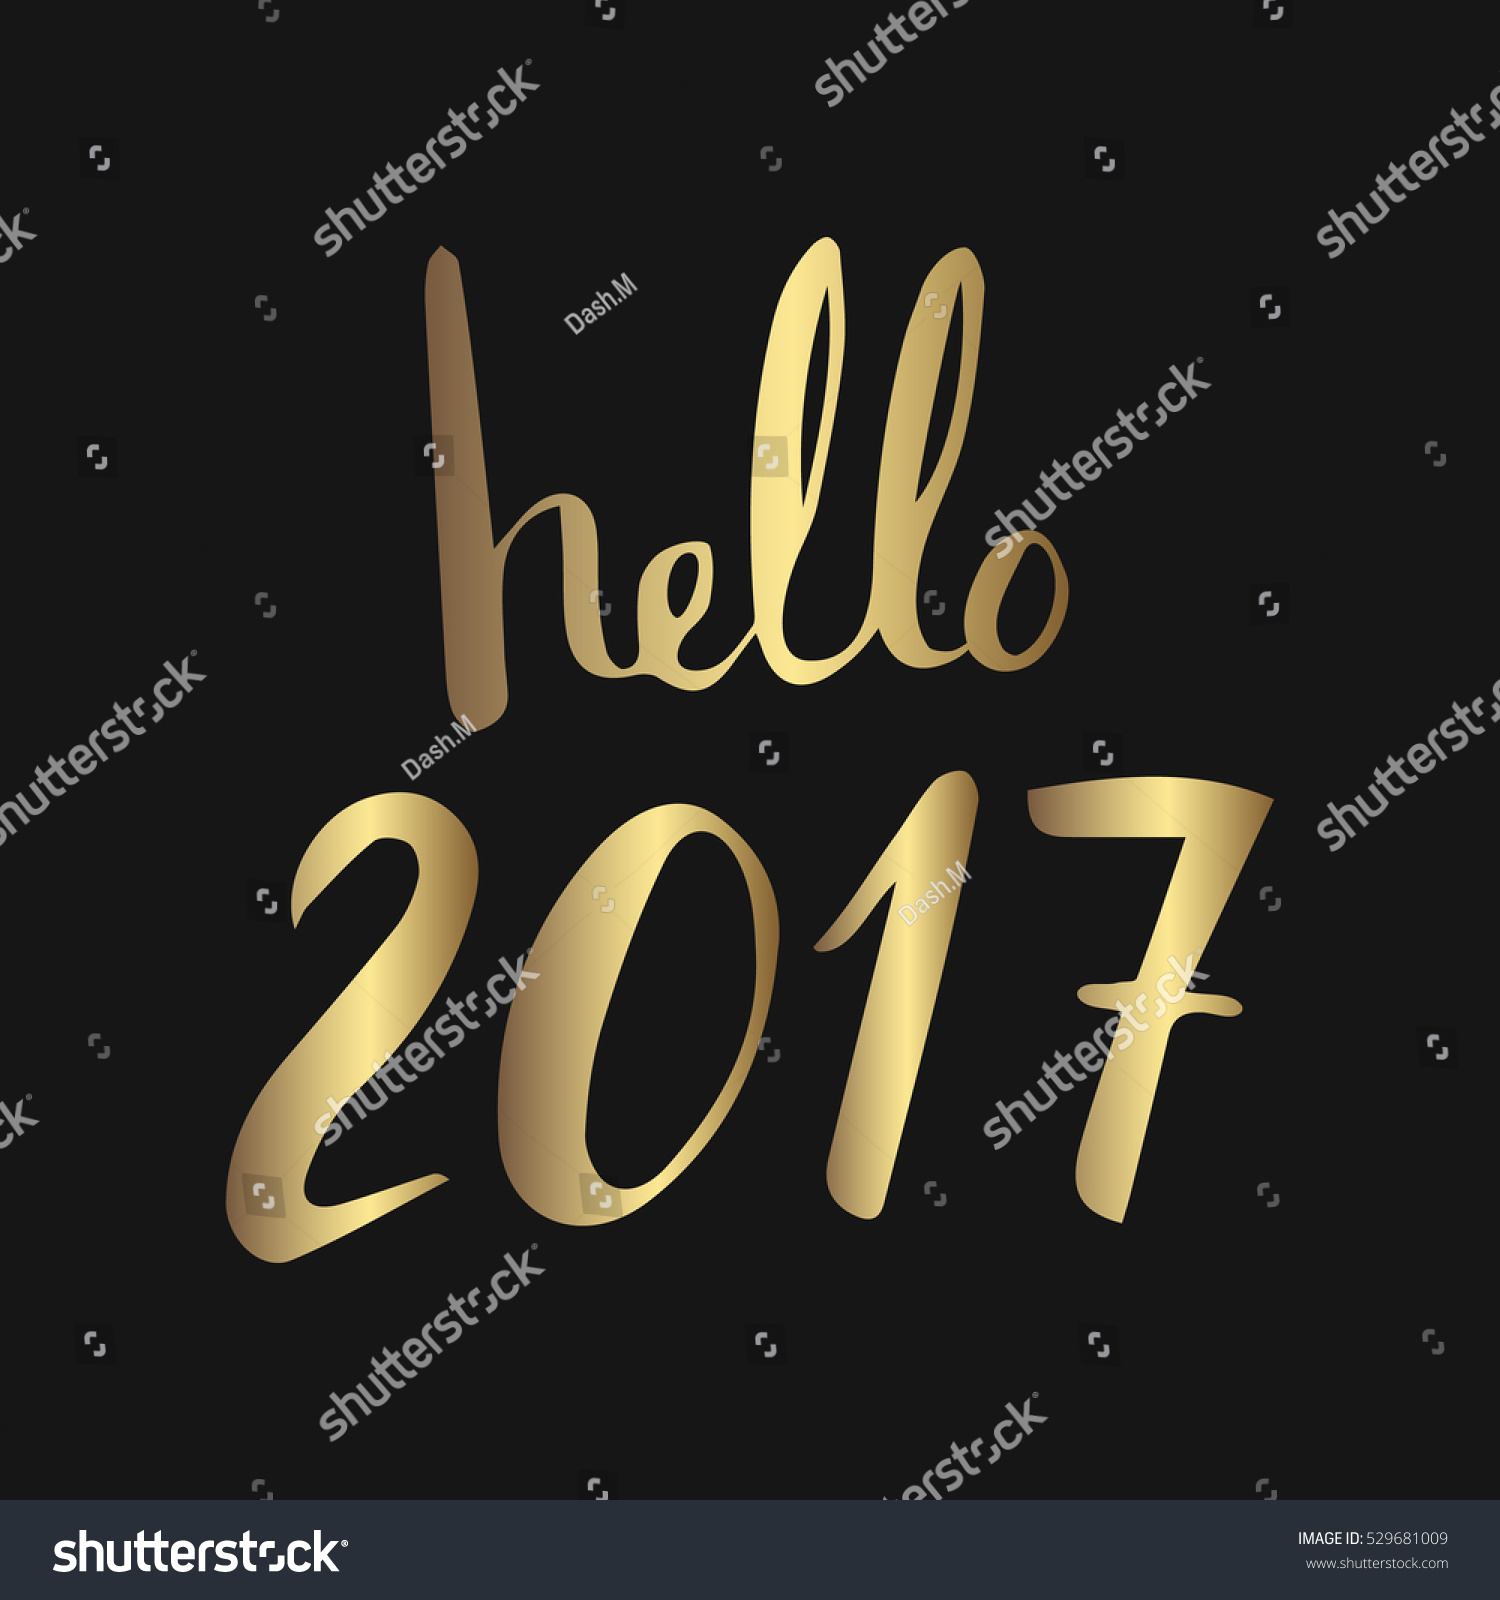 Hello 2017 new year lettering greeting stock vector 529681009 hello 2017 new year lettering for greeting card calendar kristyandbryce Images